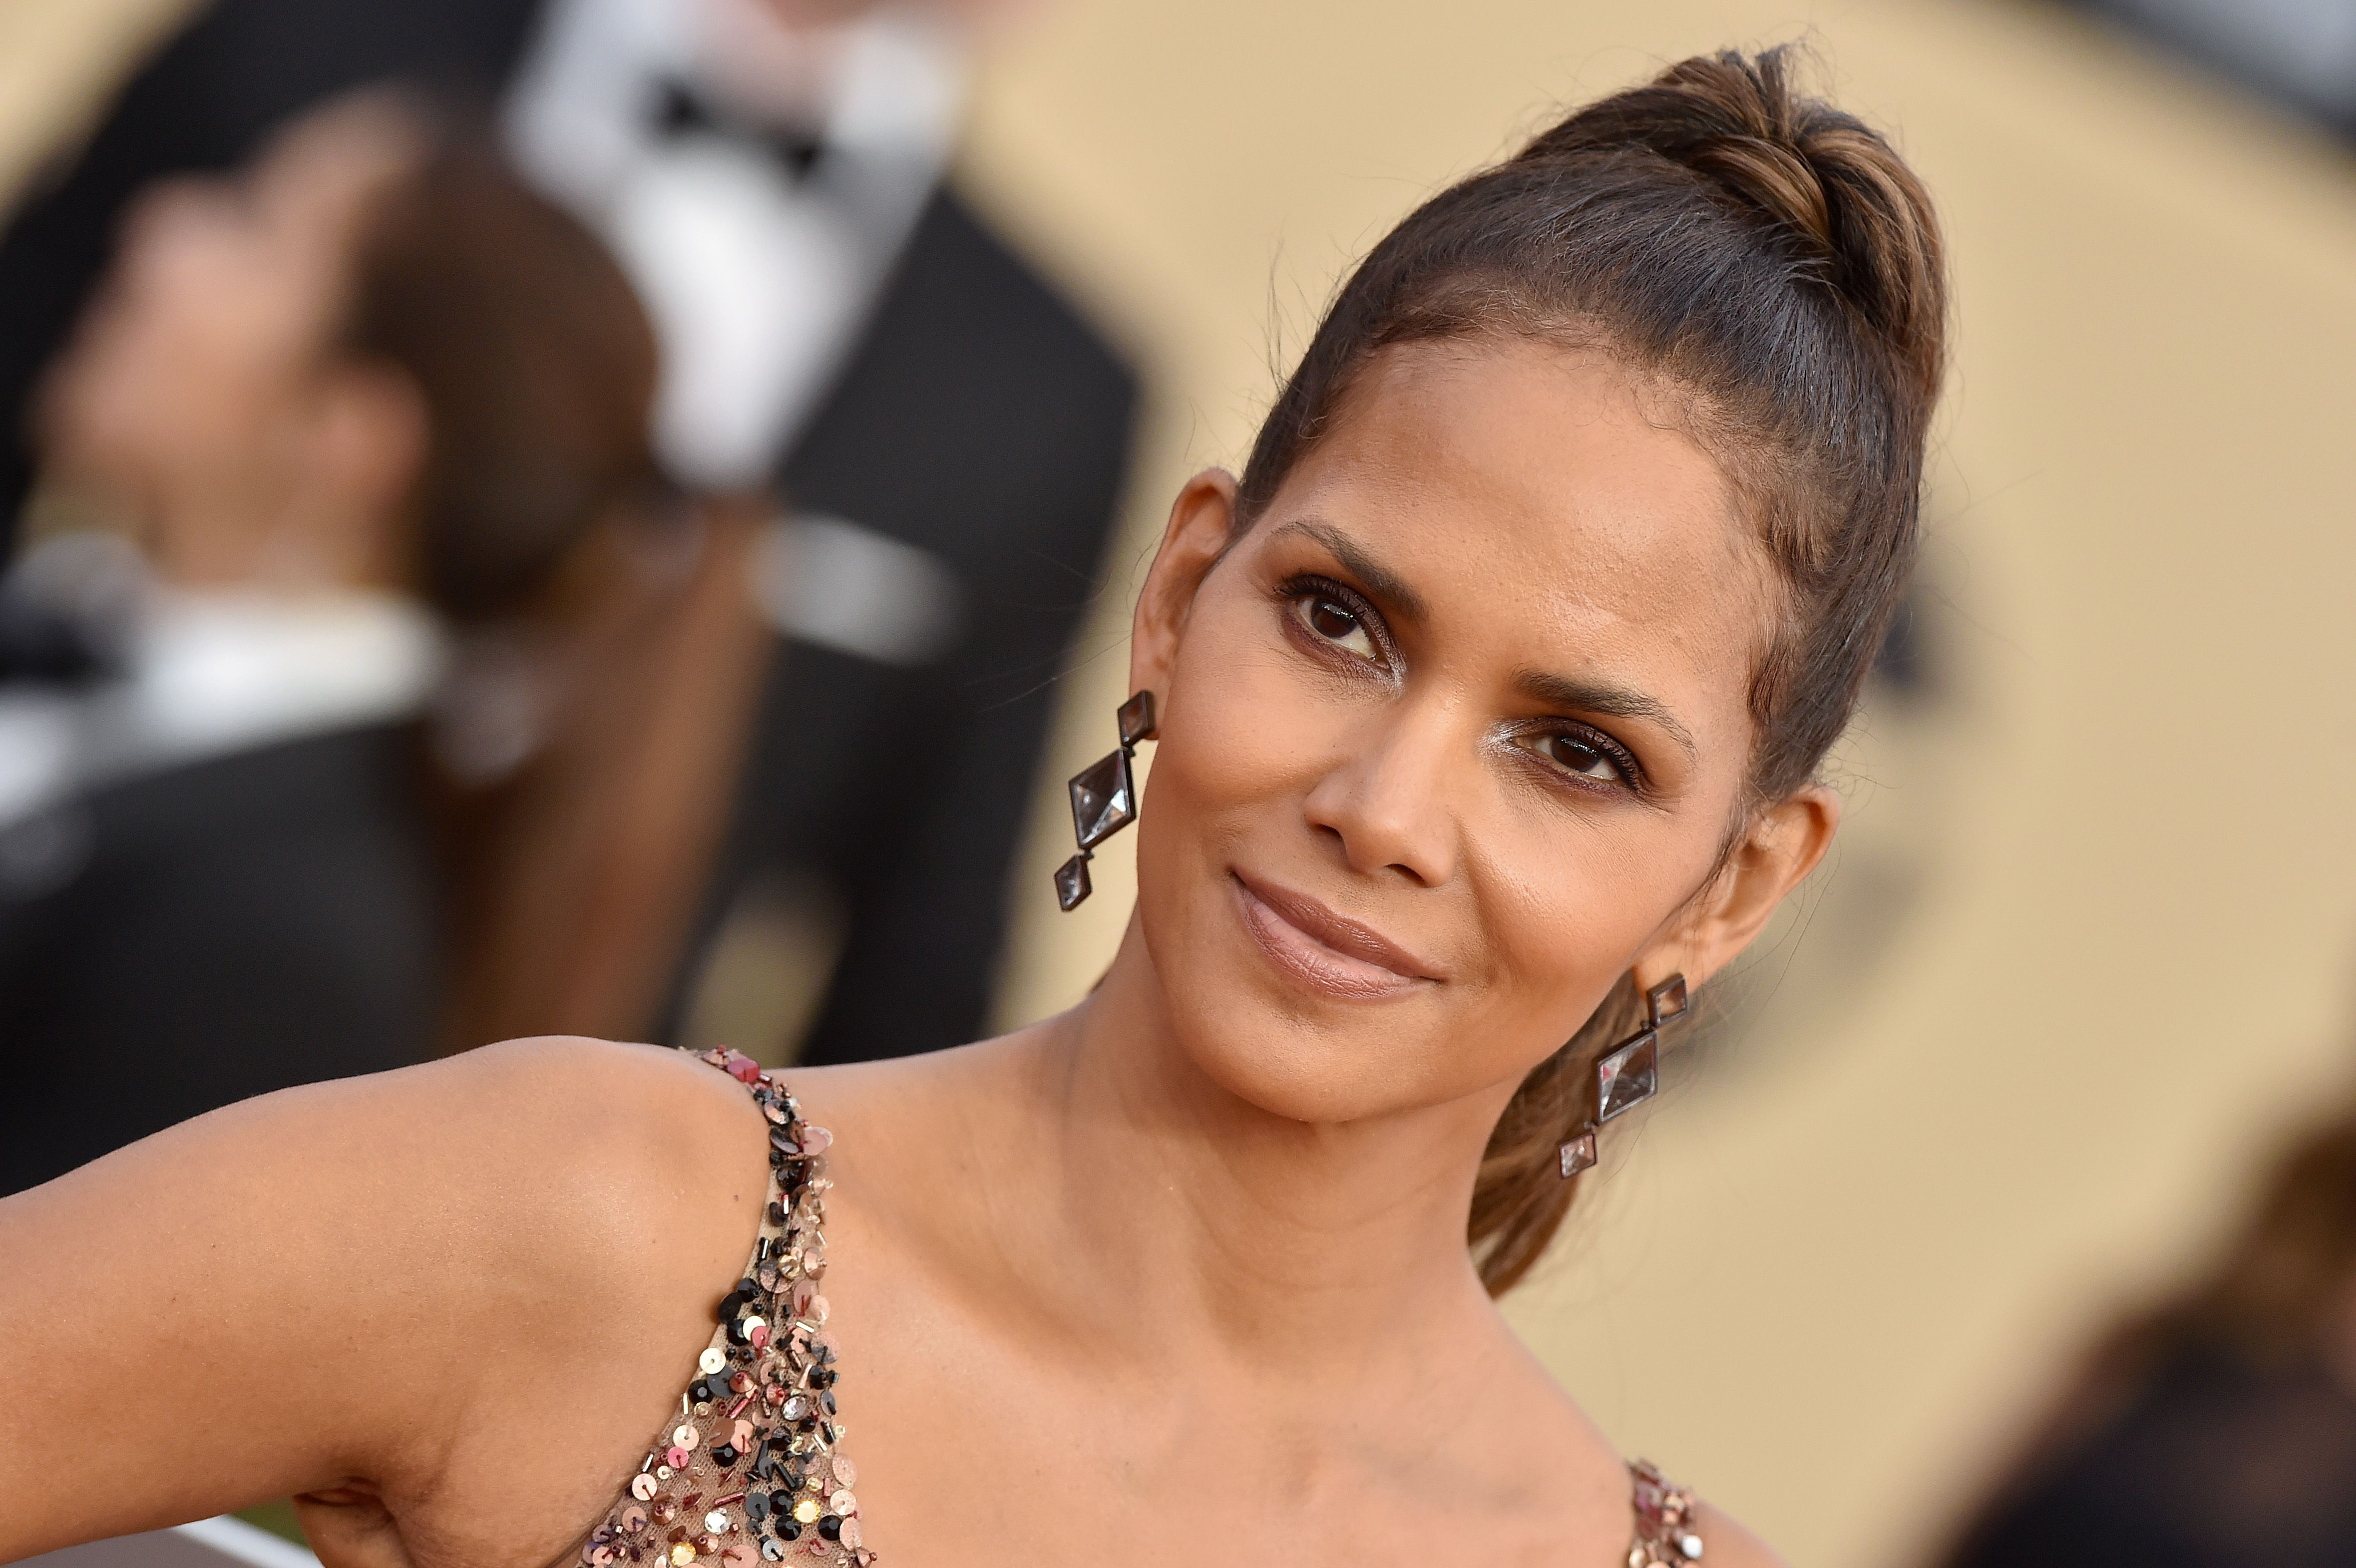 Halle Berry Just Revealed the Low-Cal Cauliflower Pizza Shes Obsessed With Halle Berry Just Revealed the Low-Cal Cauliflower Pizza Shes Obsessed With new images